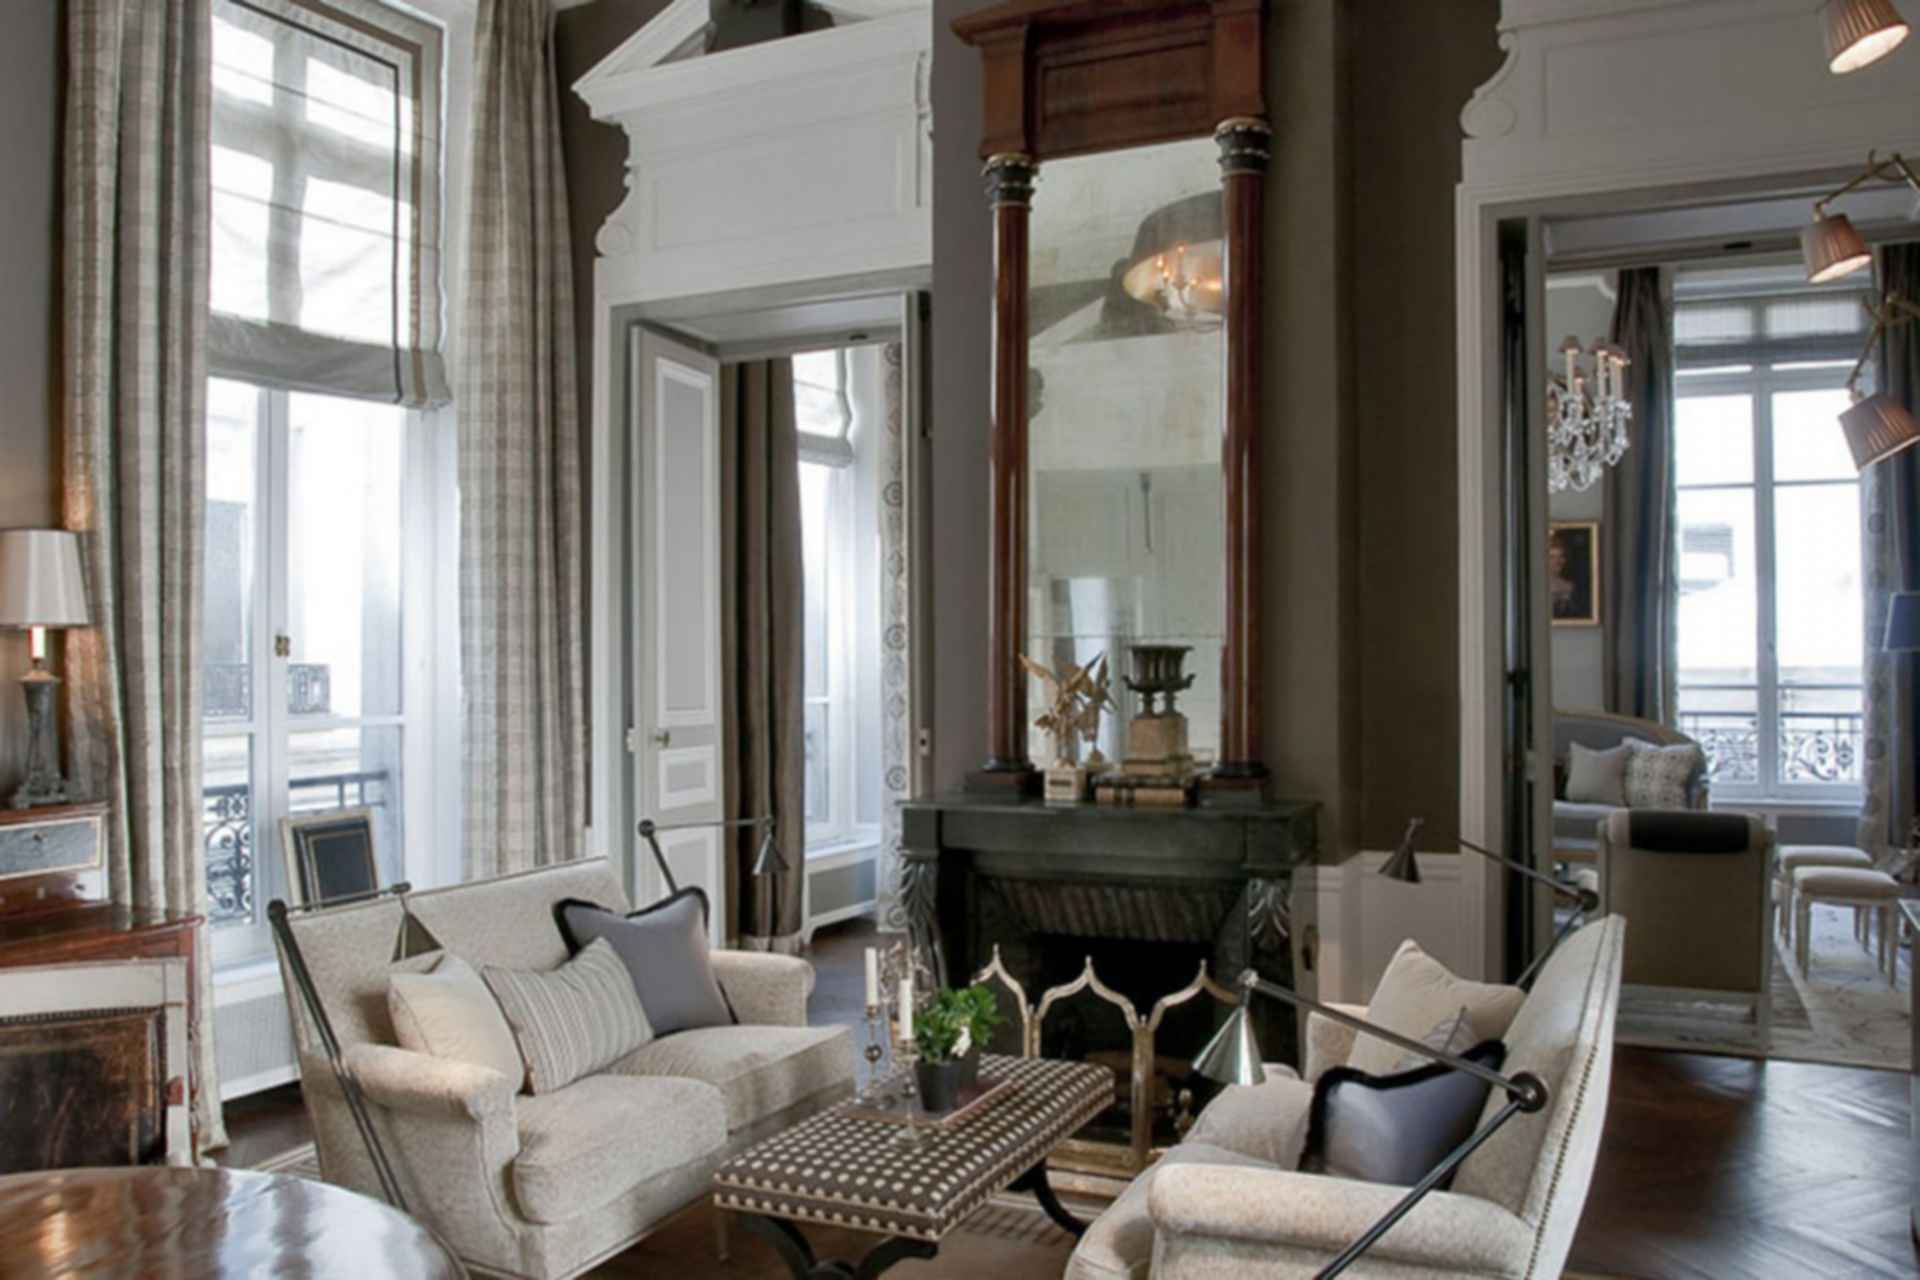 A Private Residence for an American Family-Paris, France - interior/lounge